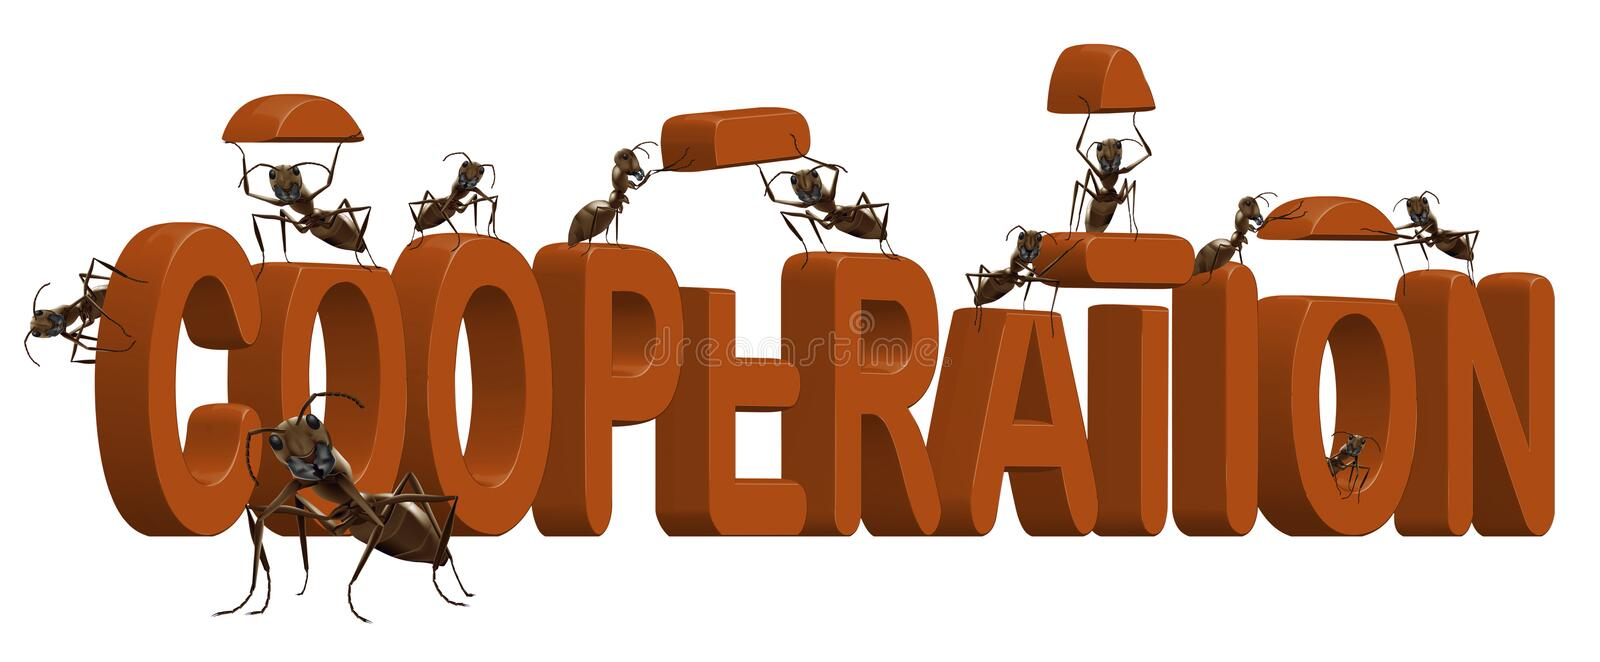 Cooperation teamwork and team spirit cooperate. Ants building red word cooperation concept for teamwork or business team spirit togetherness creativity and royalty free illustration